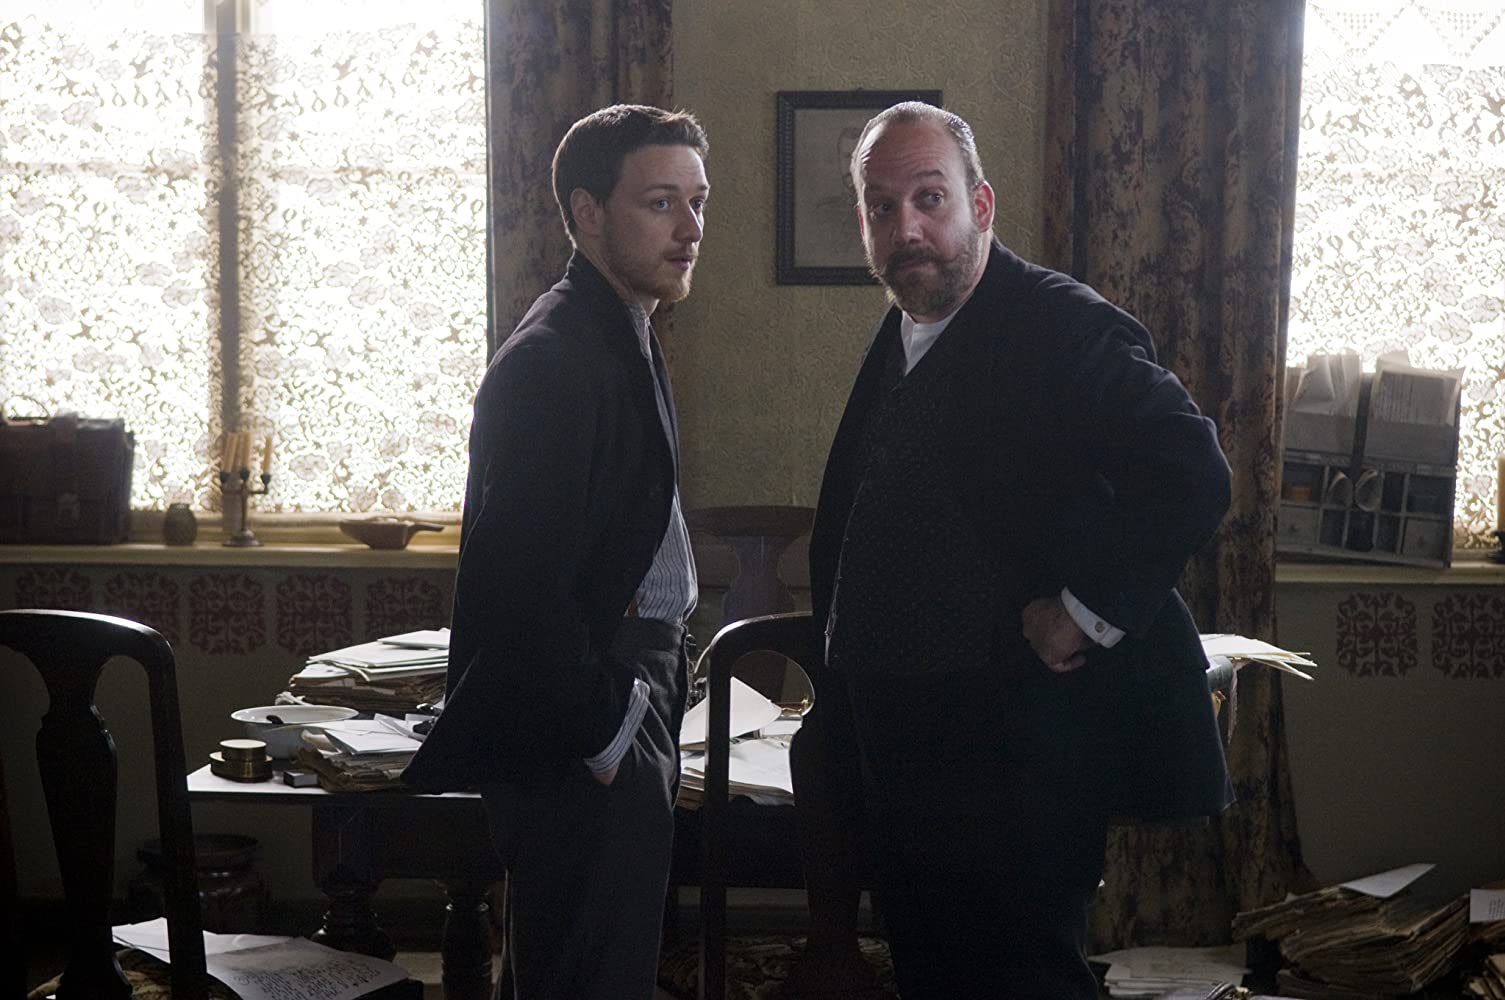 Paul Giamatti and James McAvoy in The Last Station (2009)